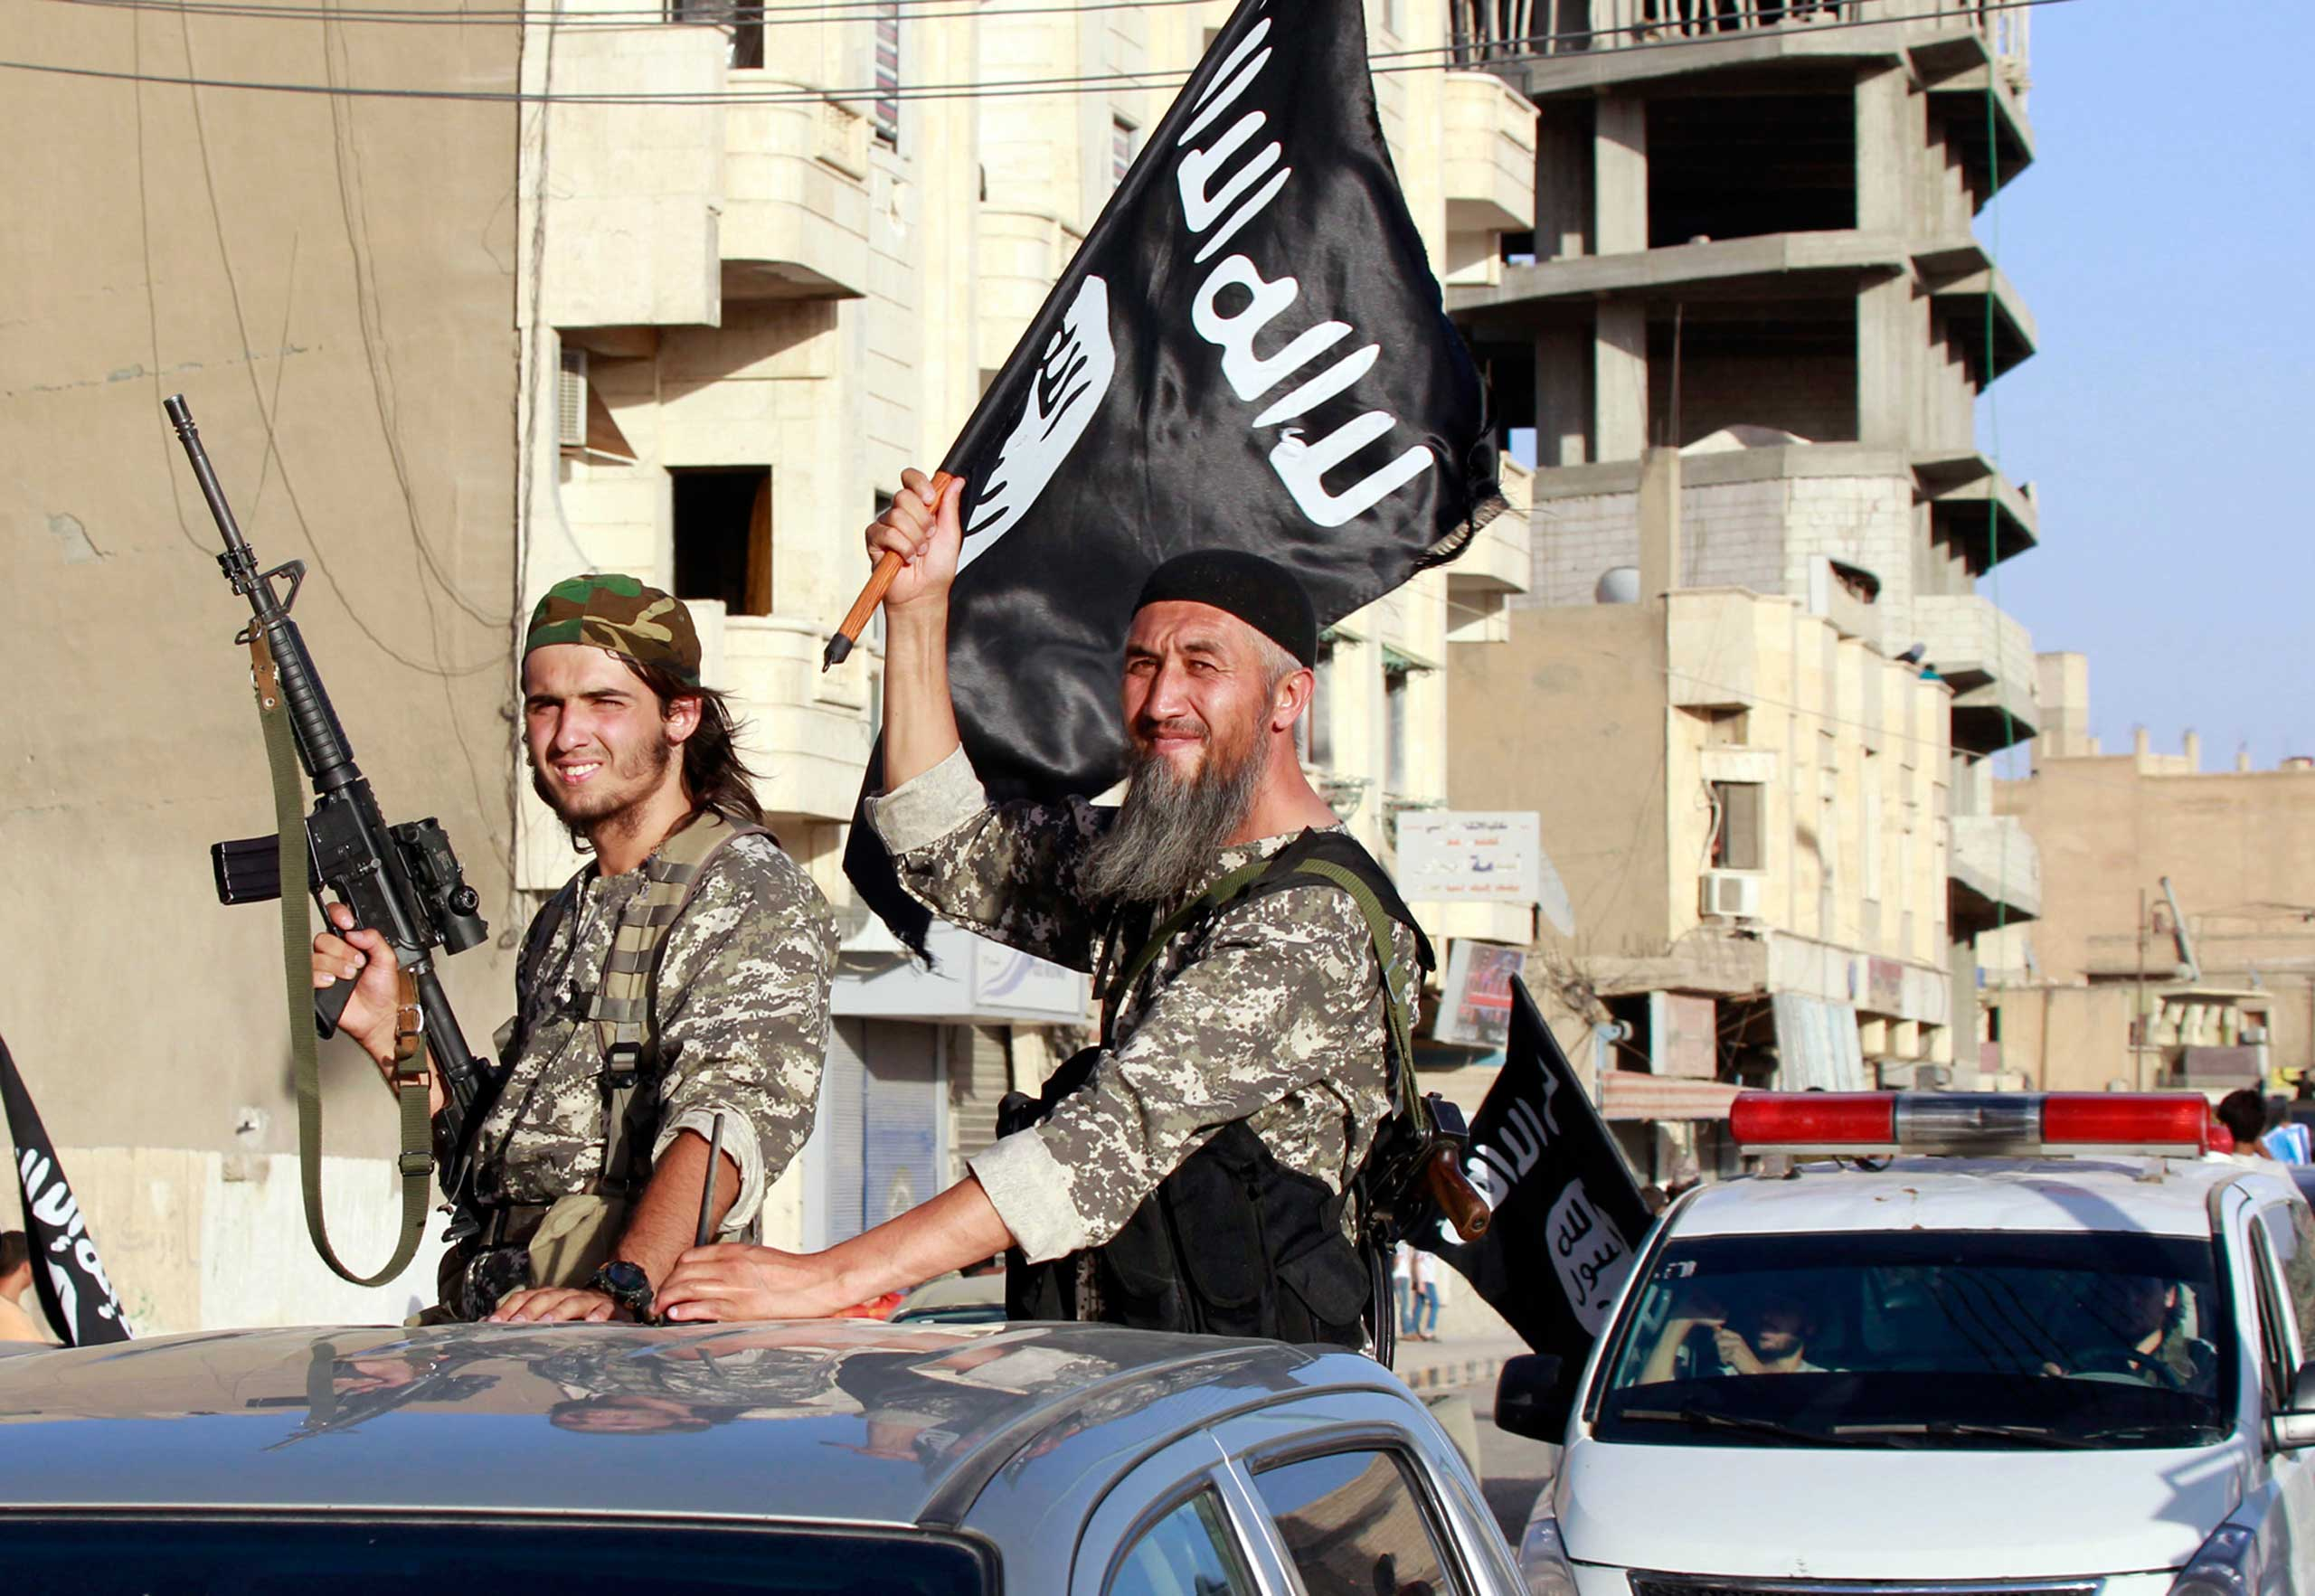 Militant Islamist fighters wave flags as they take part in a military parade along the streets of Syria's northern Raqqa province in Syria, June 30, 2014.